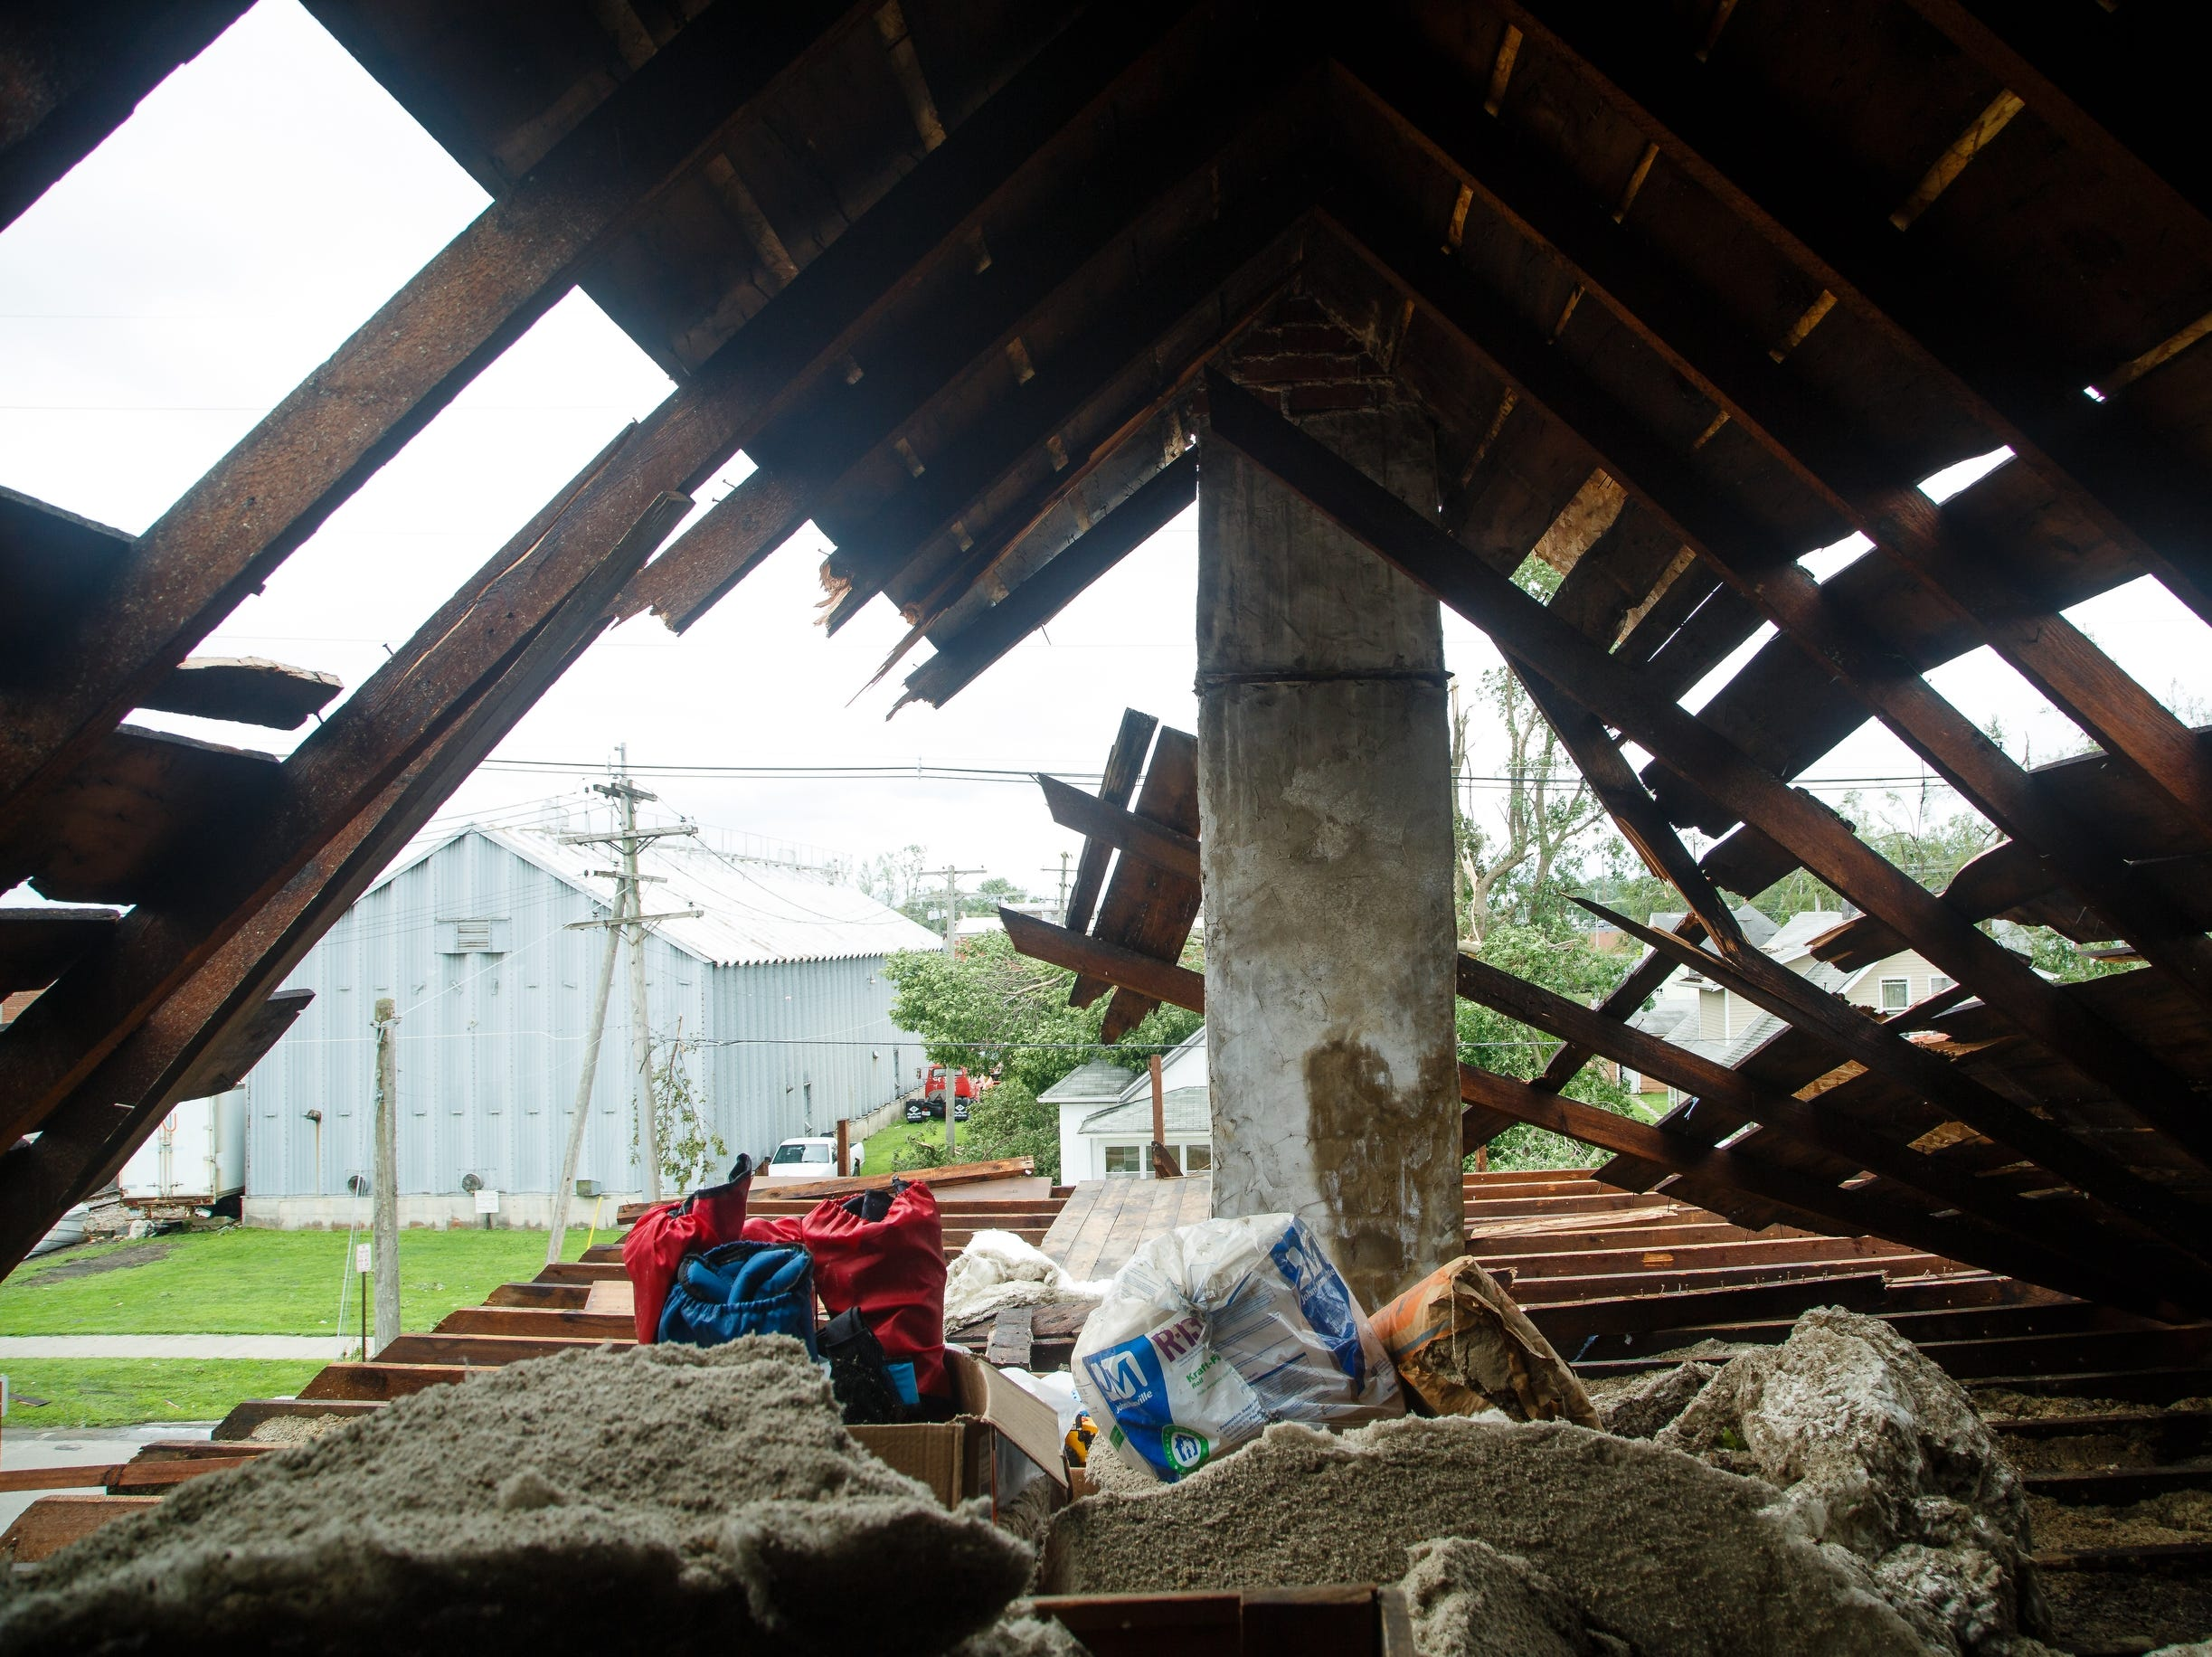 The attic of the Kunkel home sits roofless on Friday, July 20, 2018. Tornadoes swept through central Iowa yesterday causing severe damage but only minor injuries have been reported so far.